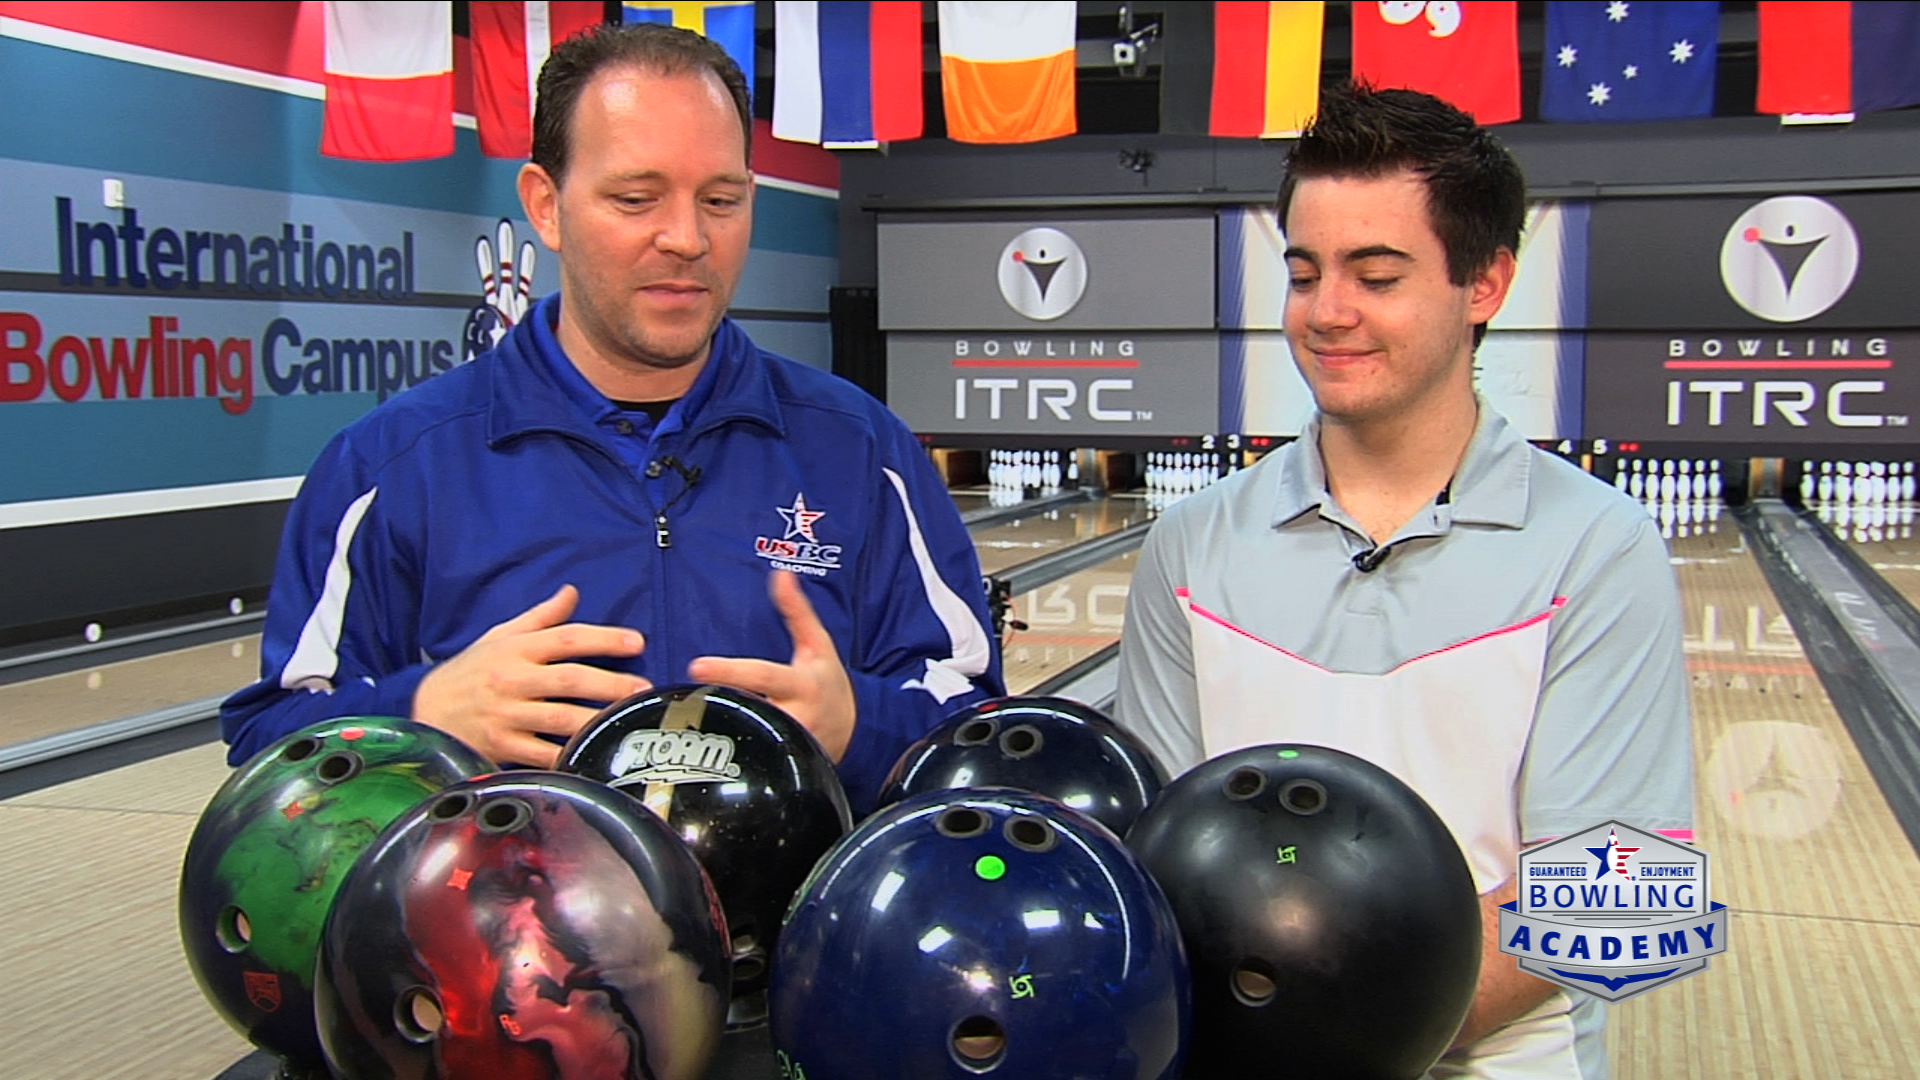 two handed bowling A young australian is almost single-handedly spurring a new age in bowling: he throws the ball with two hands  young australian puts a new spin on bowling: he throws two-handed  wsj membership.